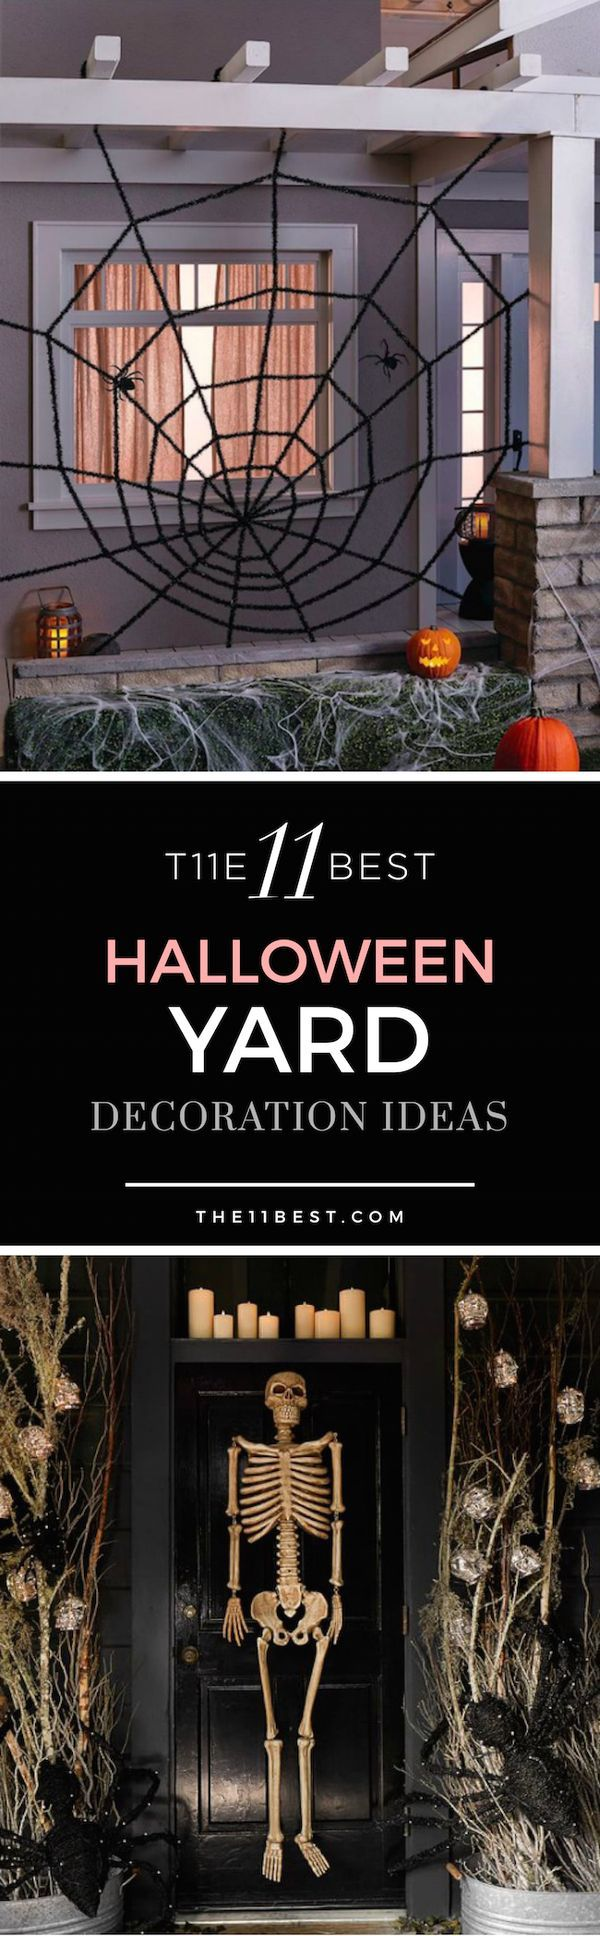 The 11 Best Halloween Yard Decoration ideas